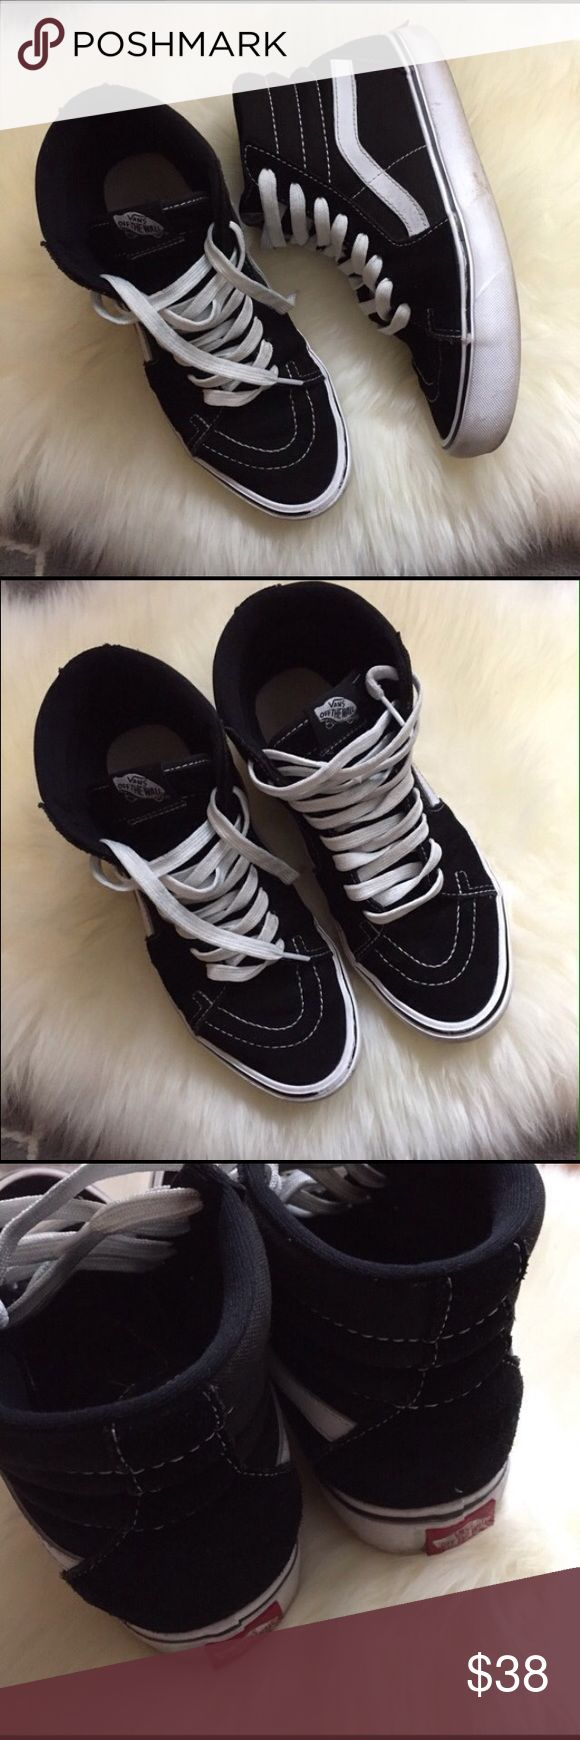 High Top Sk8 Hi Vans Used but in good condition in black and white canvas size 8 in men's and 9.5 women's *$23 onⓂ️ Vans Shoes Sneakers